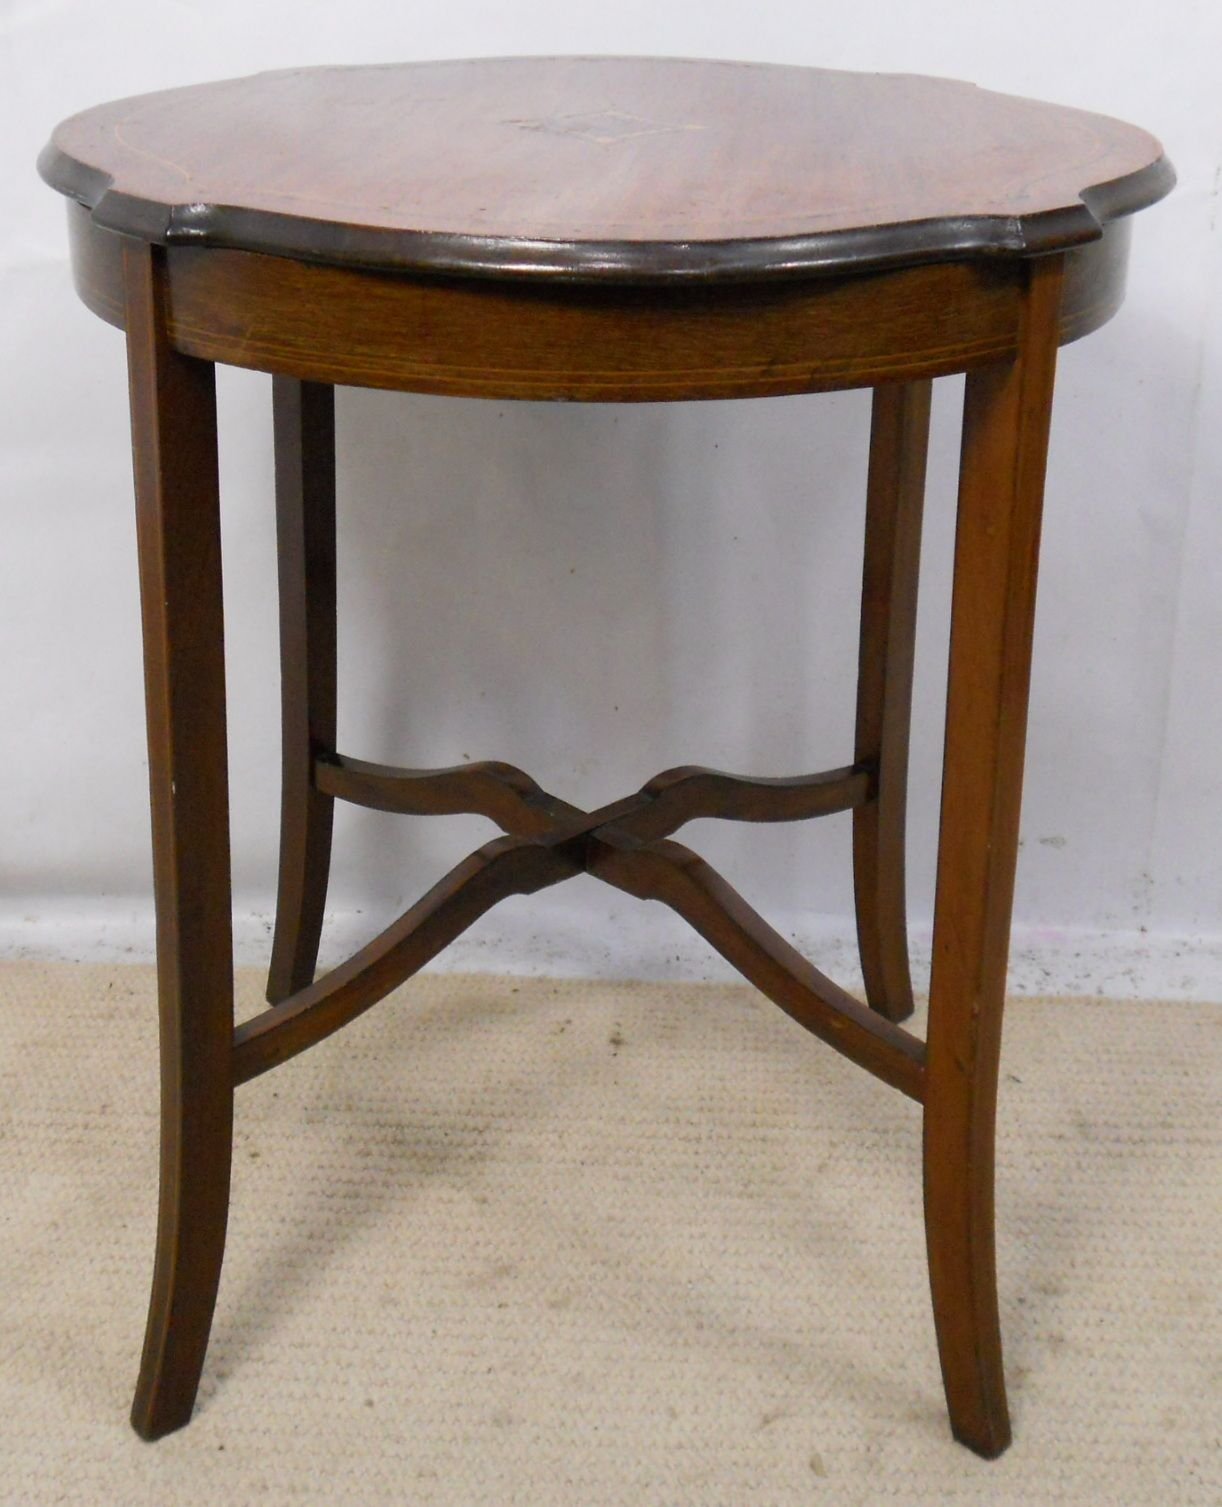 Affordable Vintage Furniture: Edwardian Inlaid Mahogany Round Occasional Table